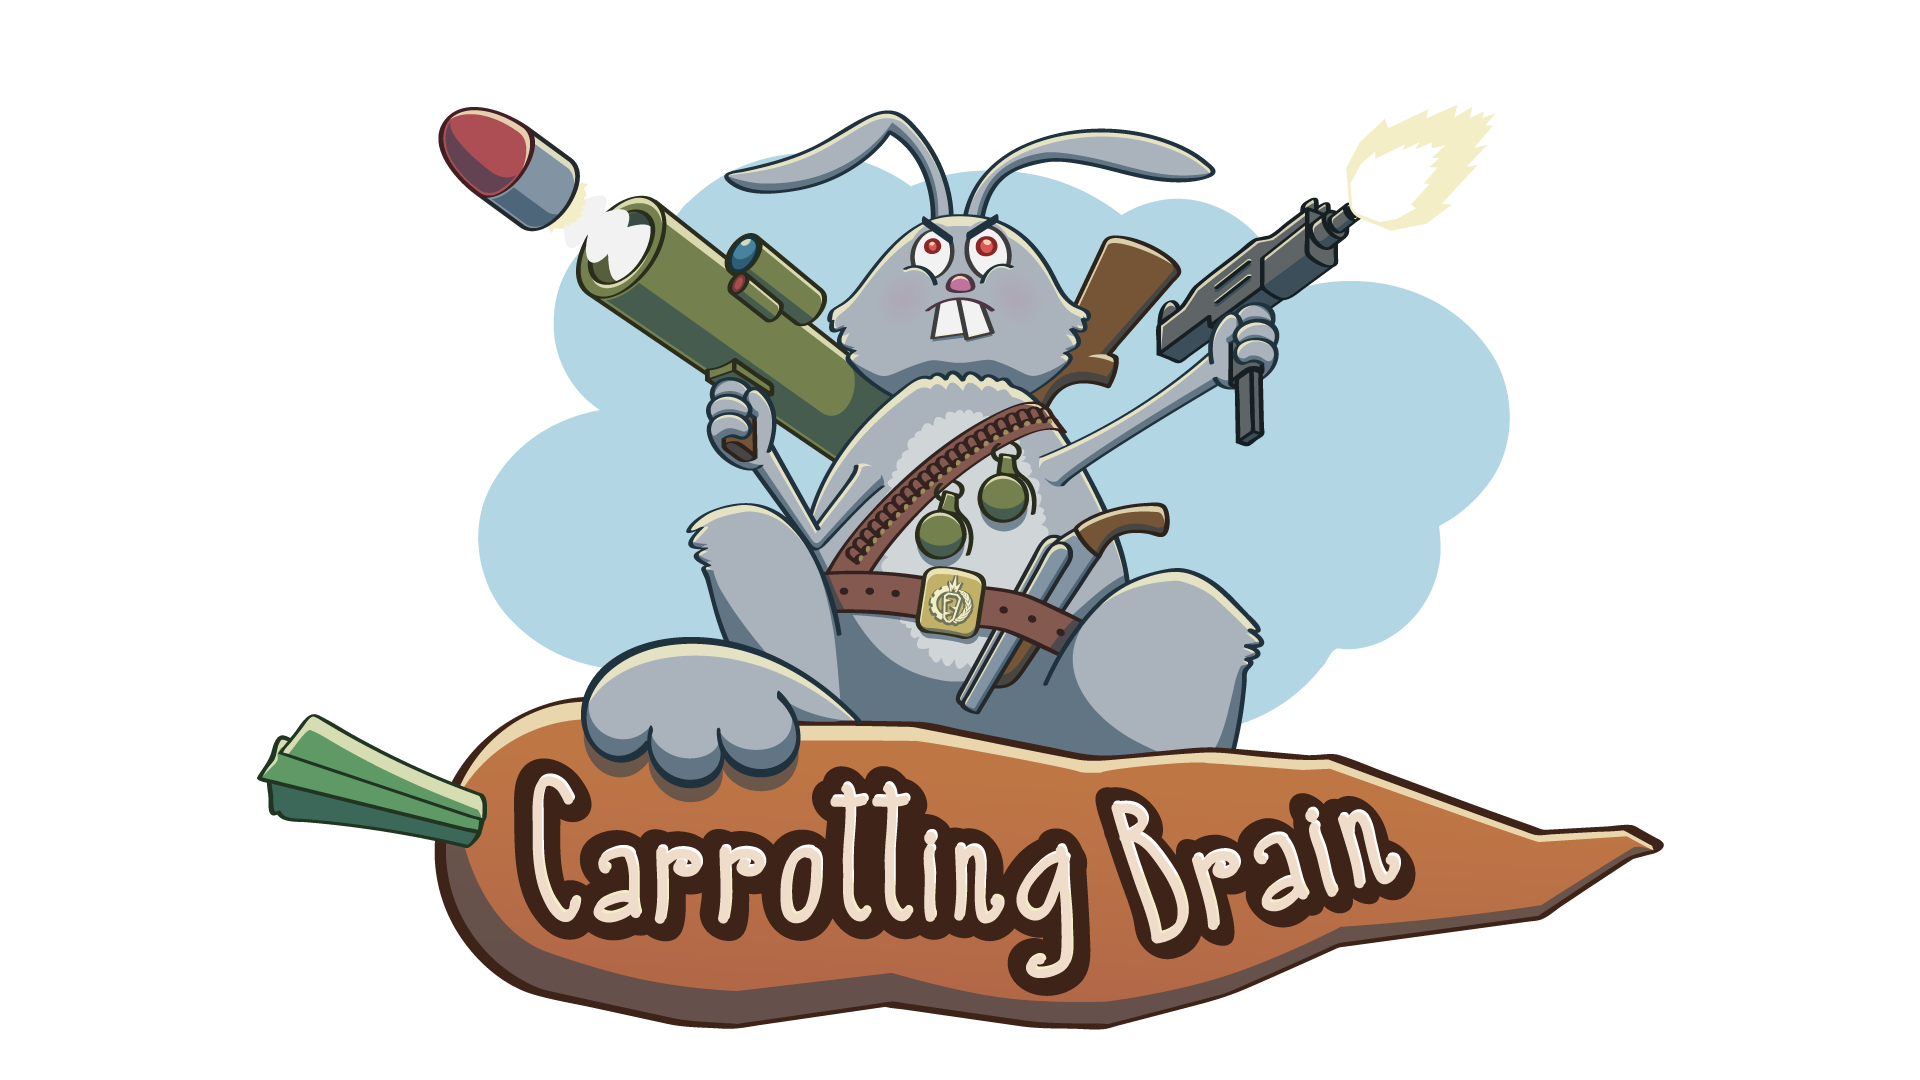 Carrotting Brain Game Logo